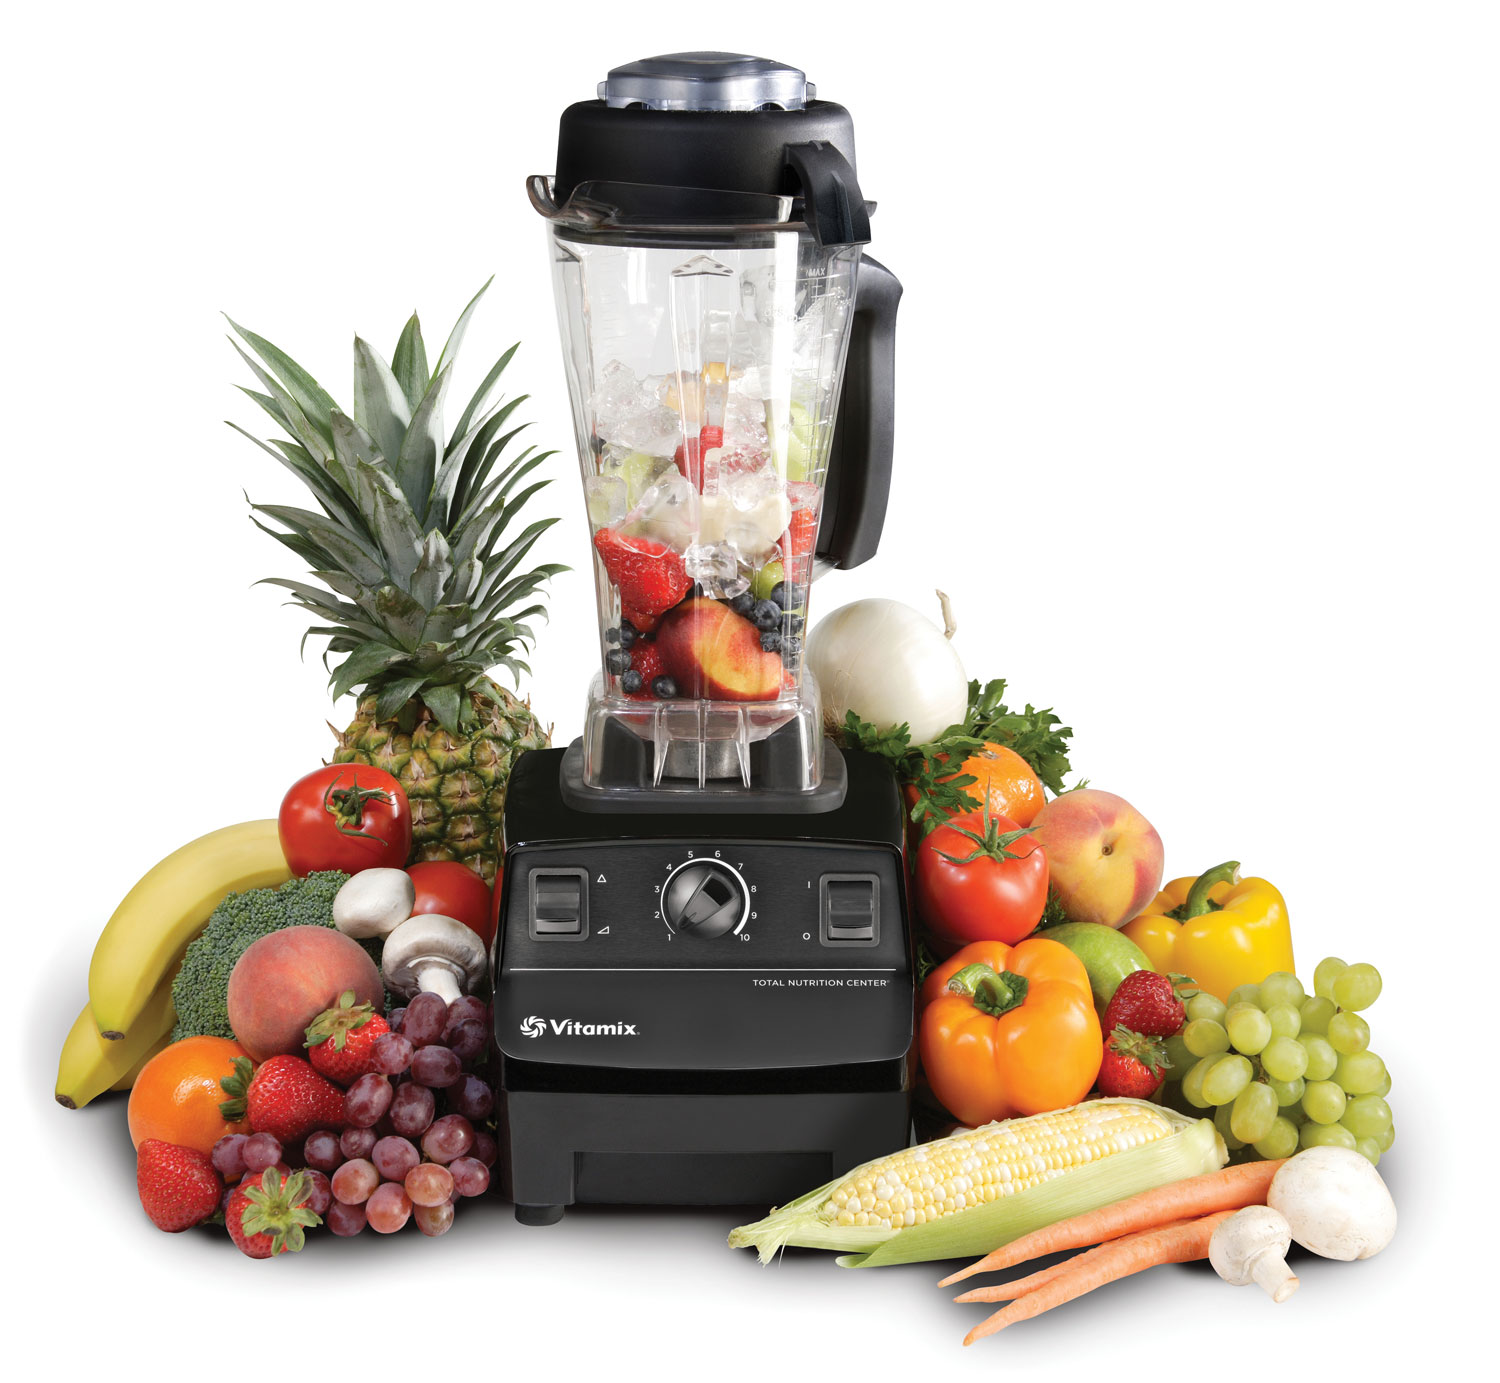 The viamix and blendtec blenders both have manual speed control